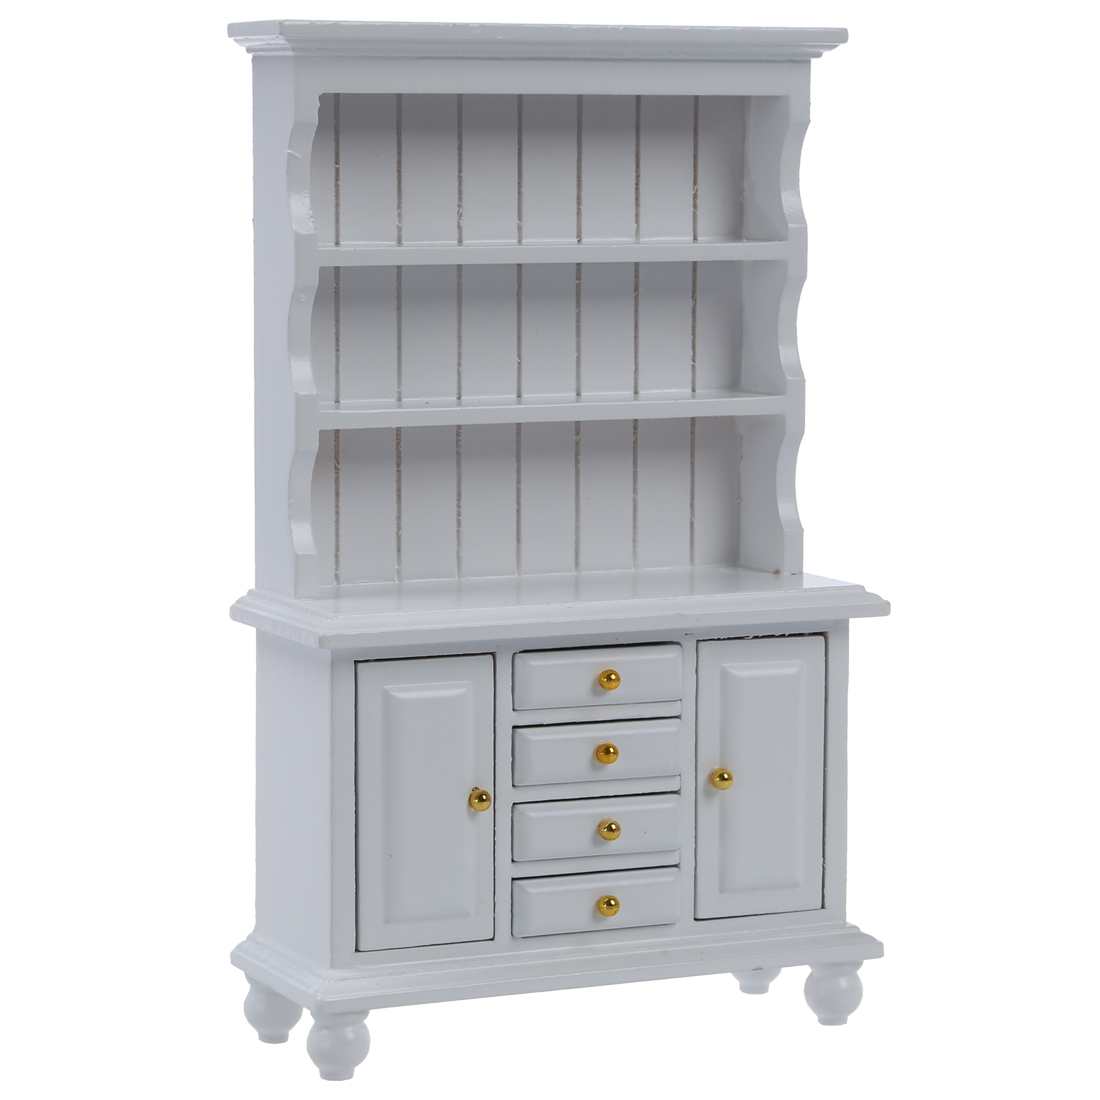 Us 6 52 19 Off 1 12 Dollhouse Miniature Furniture Multifunction Wood Cabinet Bookcase White In Doll Houses From Toys Hobbies On Aliexpress